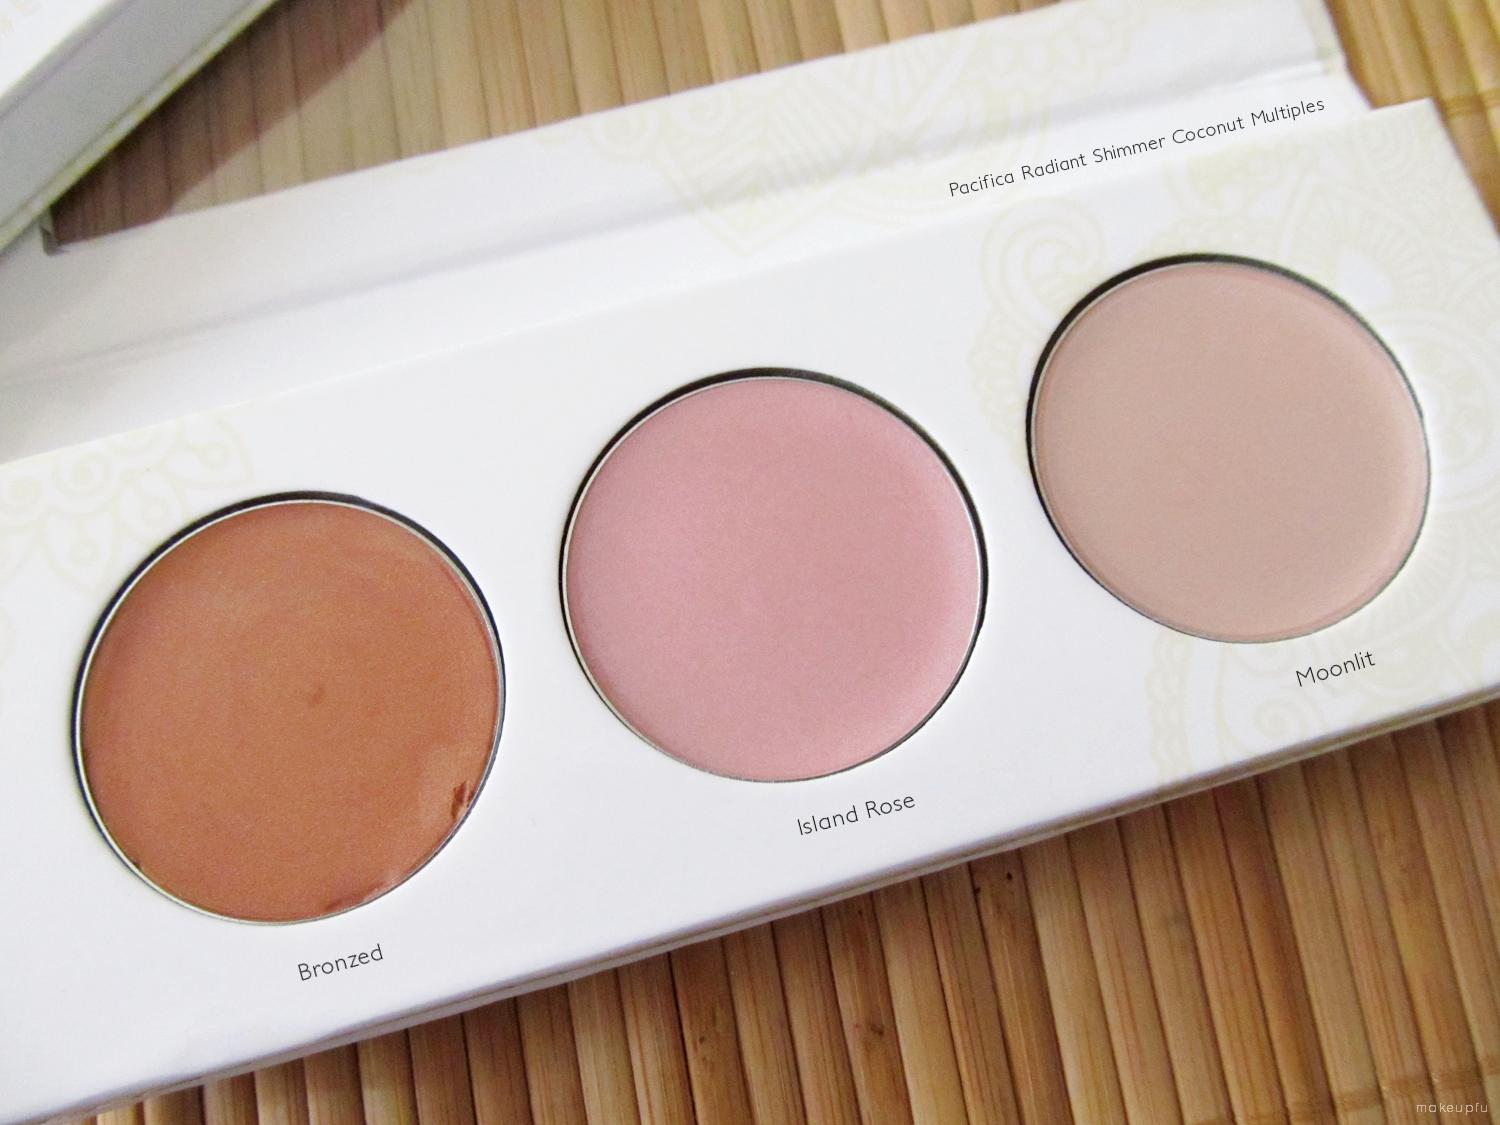 Color Palette For Home Pacifica Radiant Shimmer Coconut Multiples Review